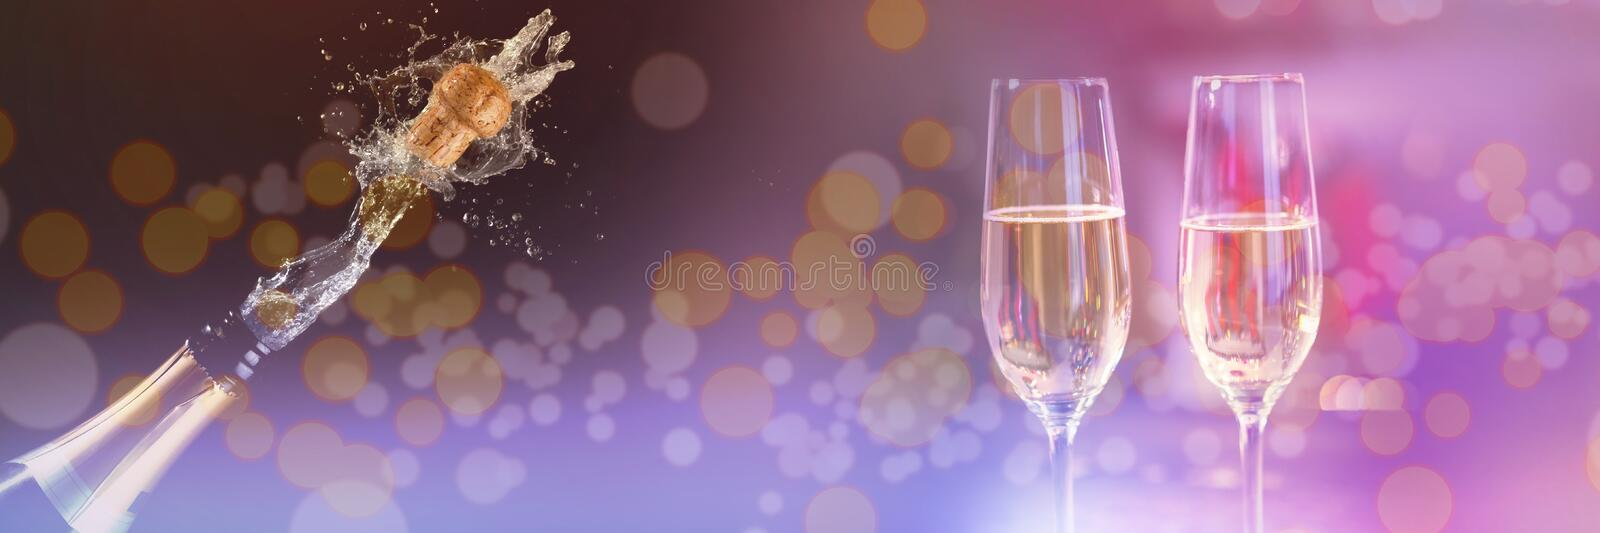 Composite image of two glasses of champagne. Two glasses of champagne against champagne cork popping stock photo